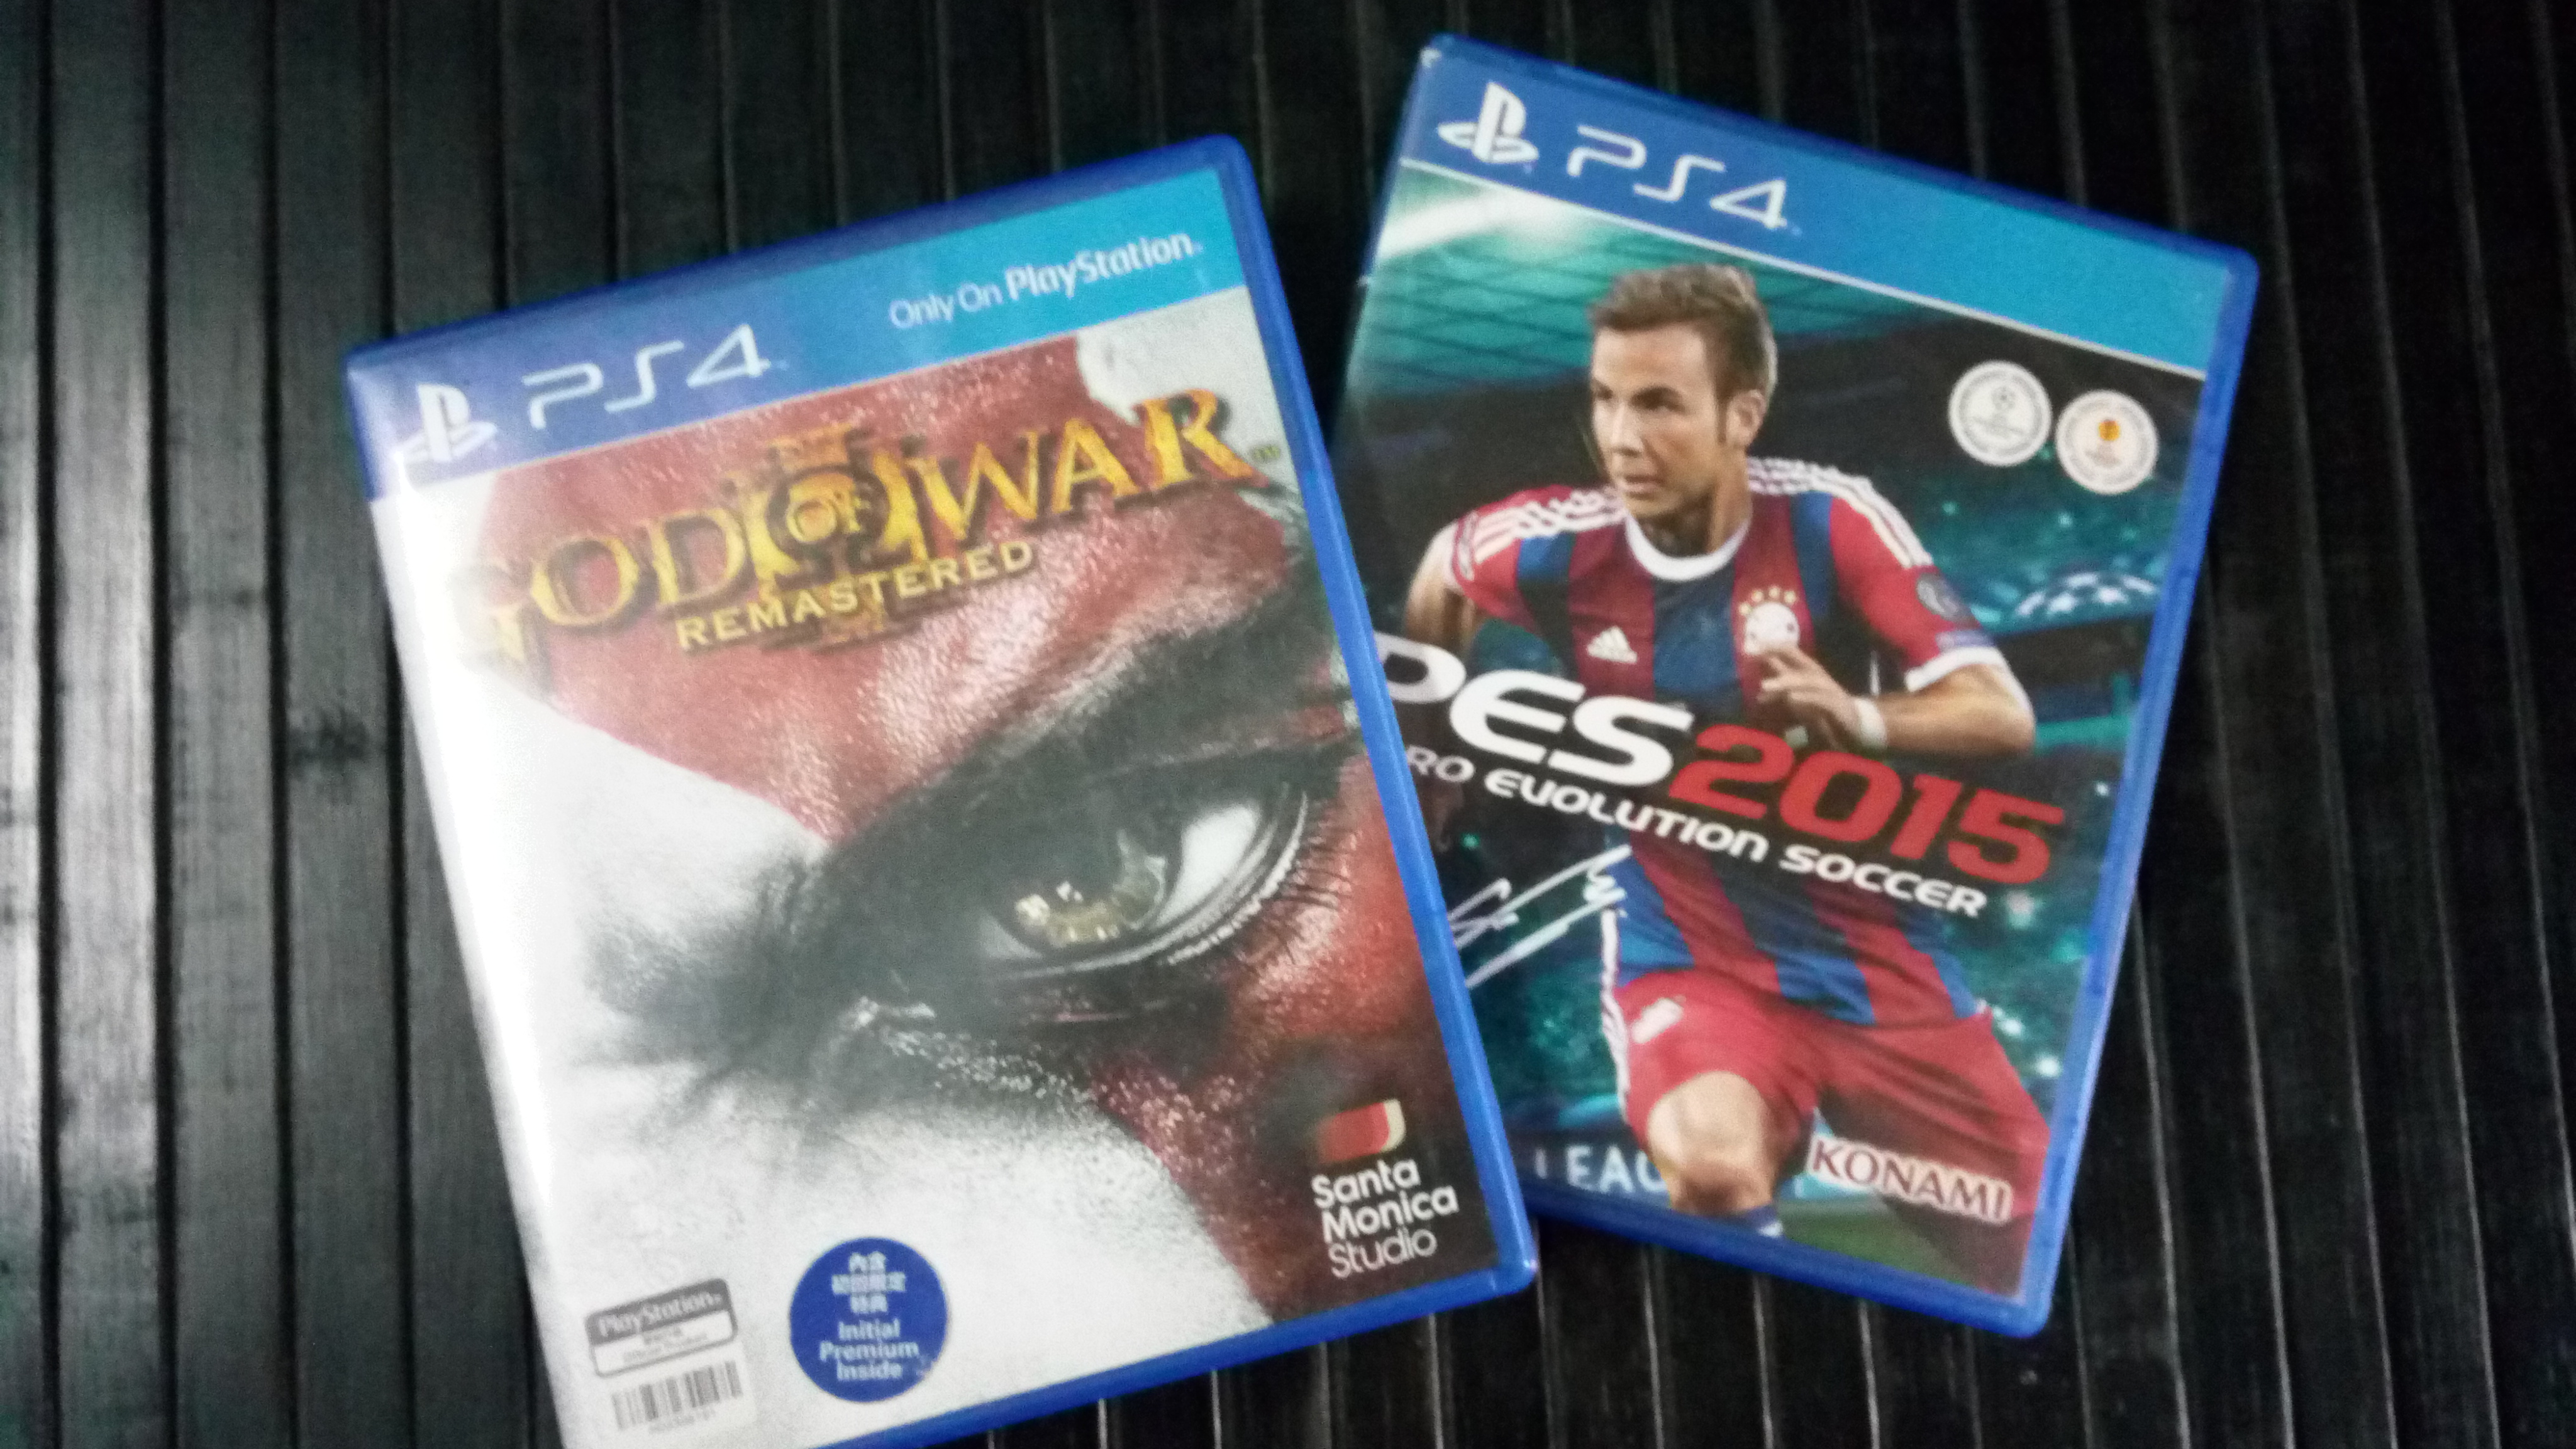 cd game god of war and pes2015 abdd7b090